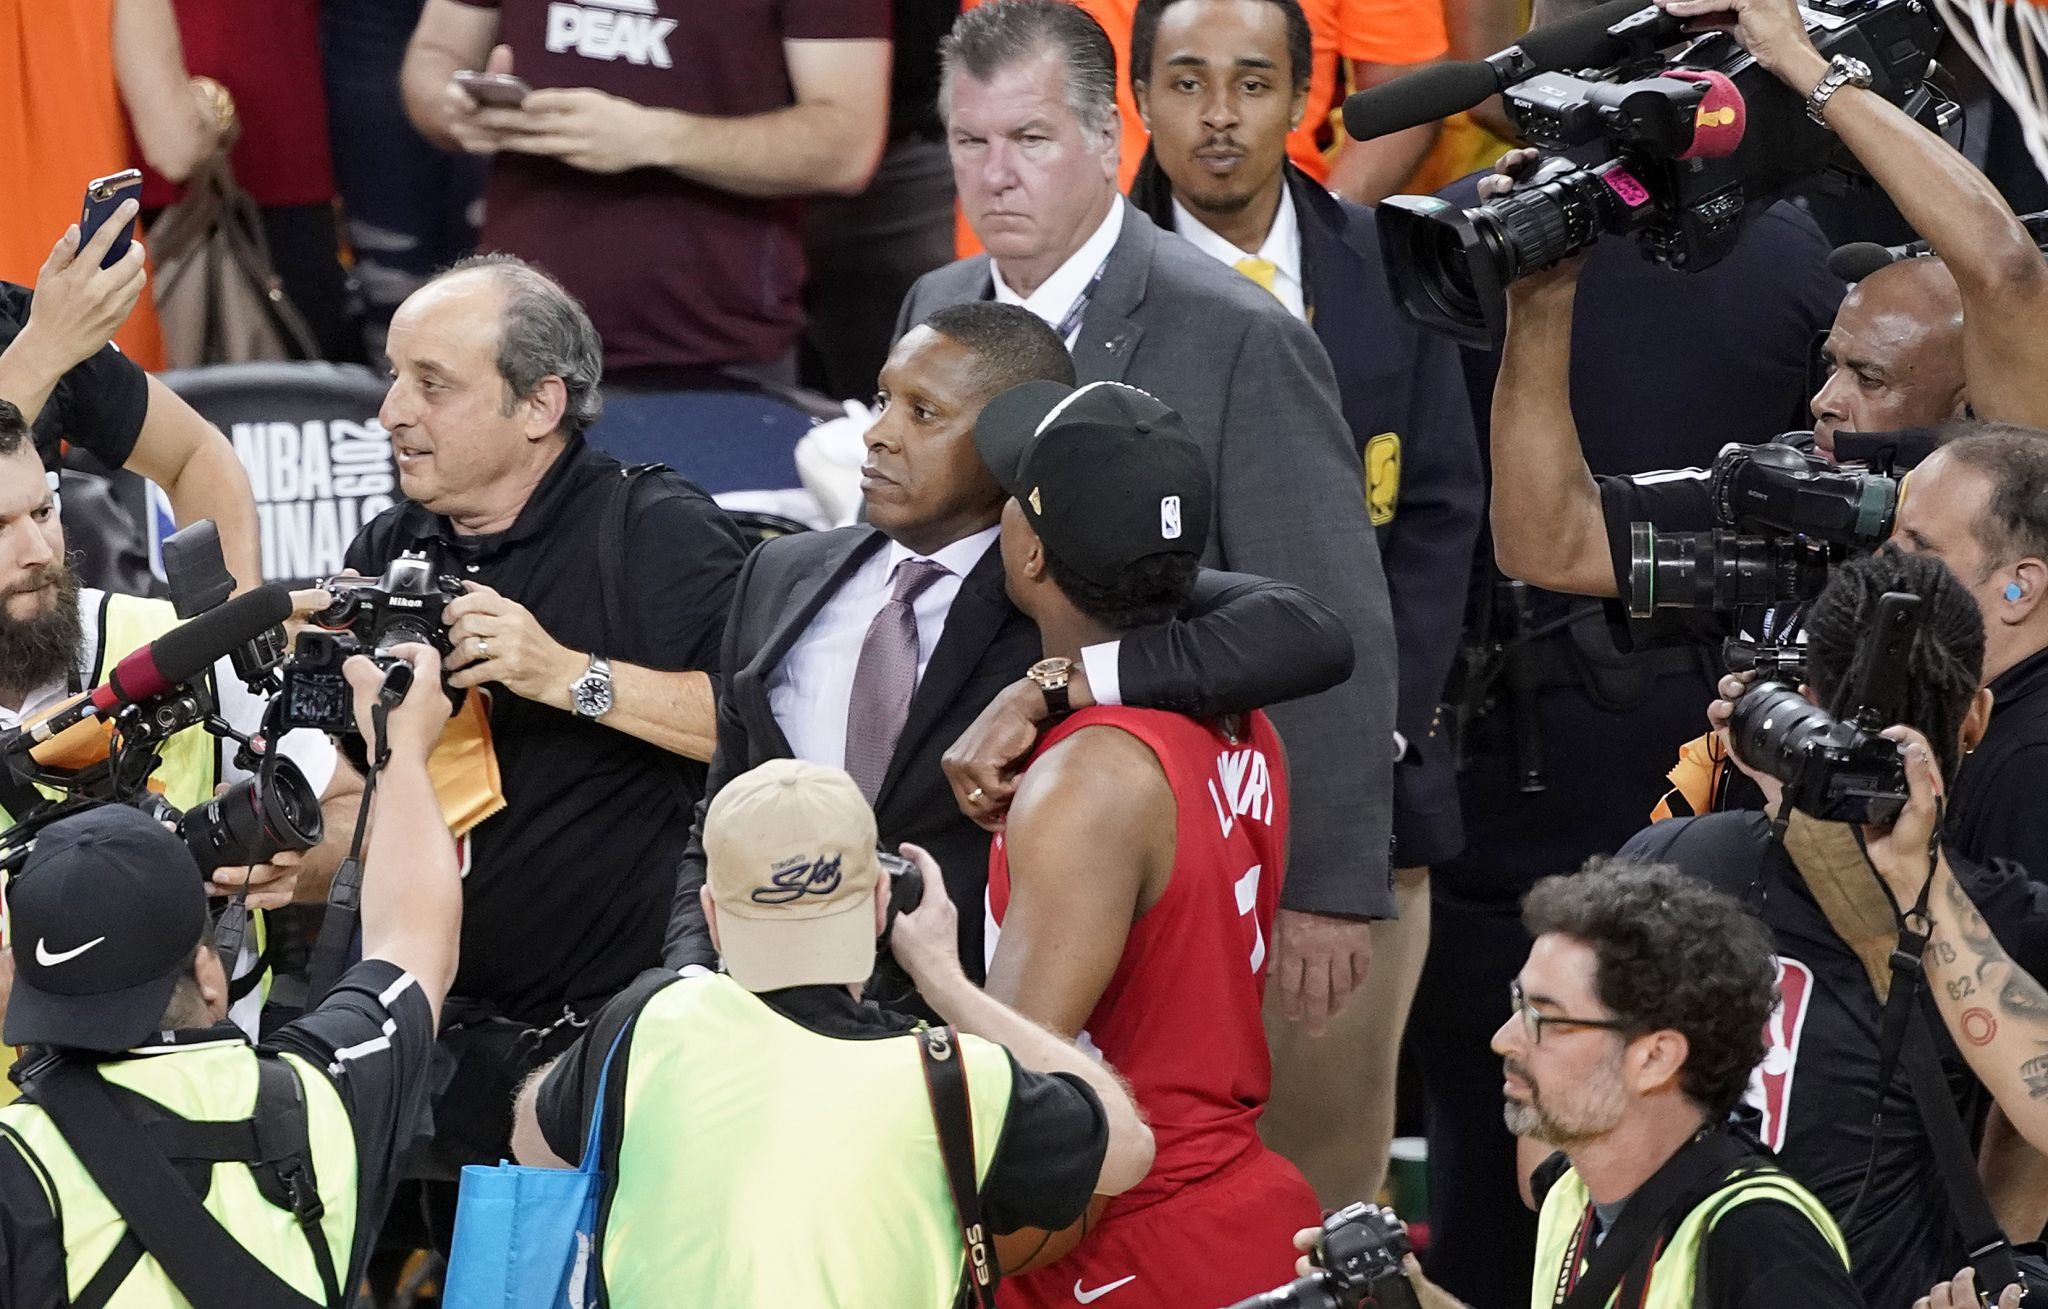 Why is Adam Silver silent after cop dropped lawsuit against Masai Ujiri?